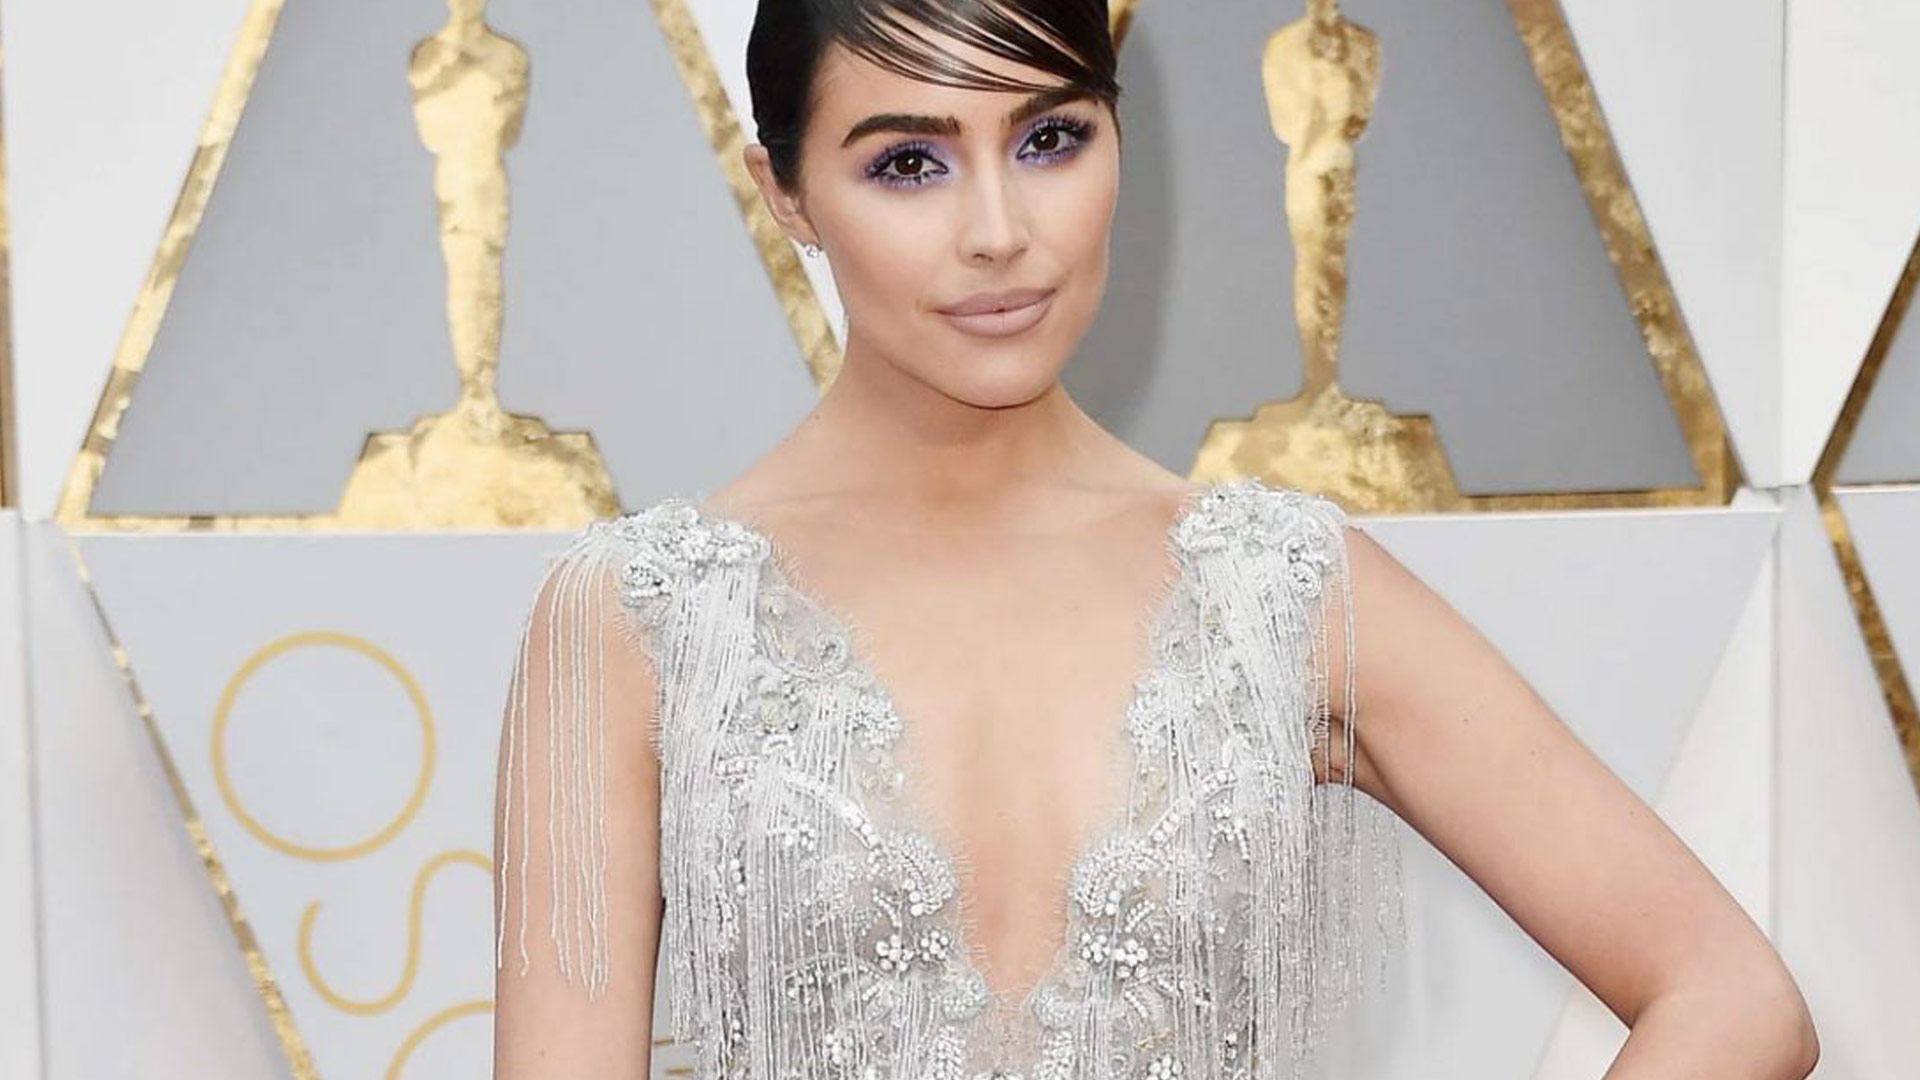 Olivia Culpo in Stella Artois at the Oscars